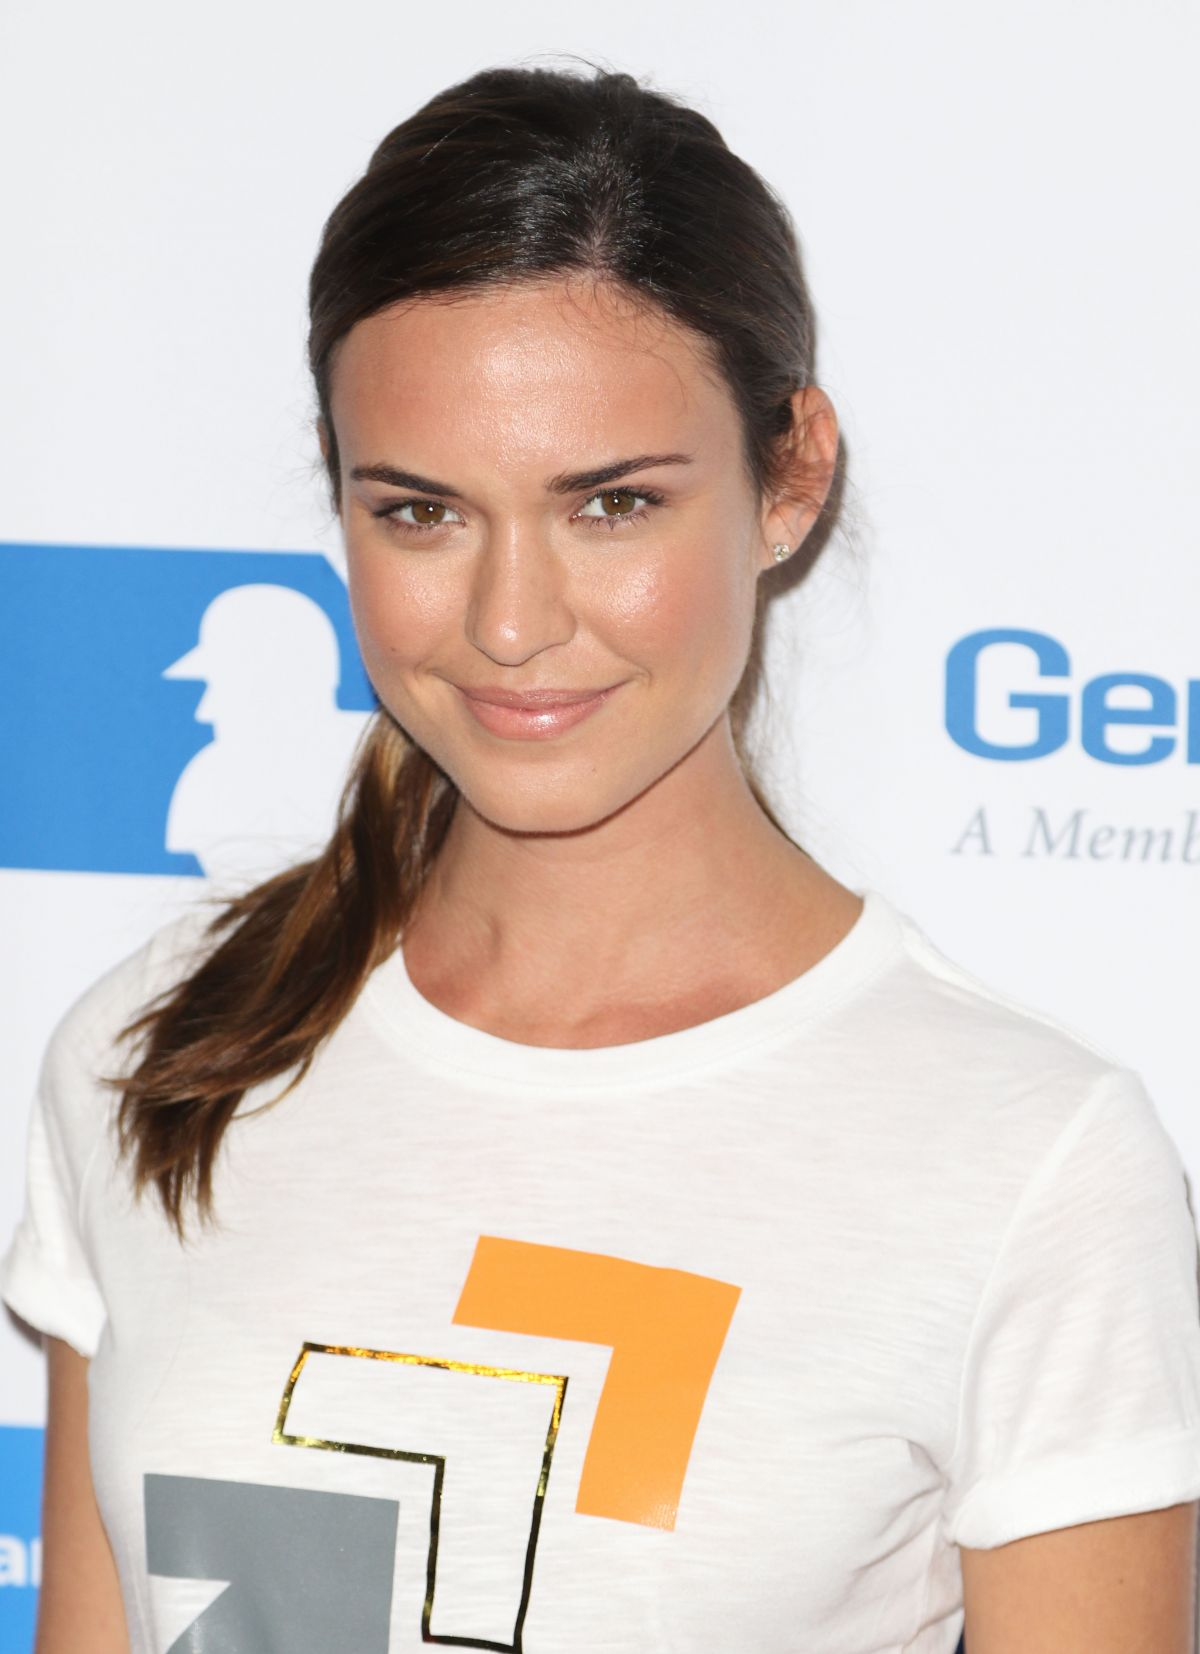 Odette Annable At 5th Biennial Stand Up To Cancer at Walt Disney Concert Hall in Los Angeles, CA   odette-annable-at-5th-biennial-stand-up-to-cancer-at-walt-disney-concert-hall-in-los-angeles-ca_7